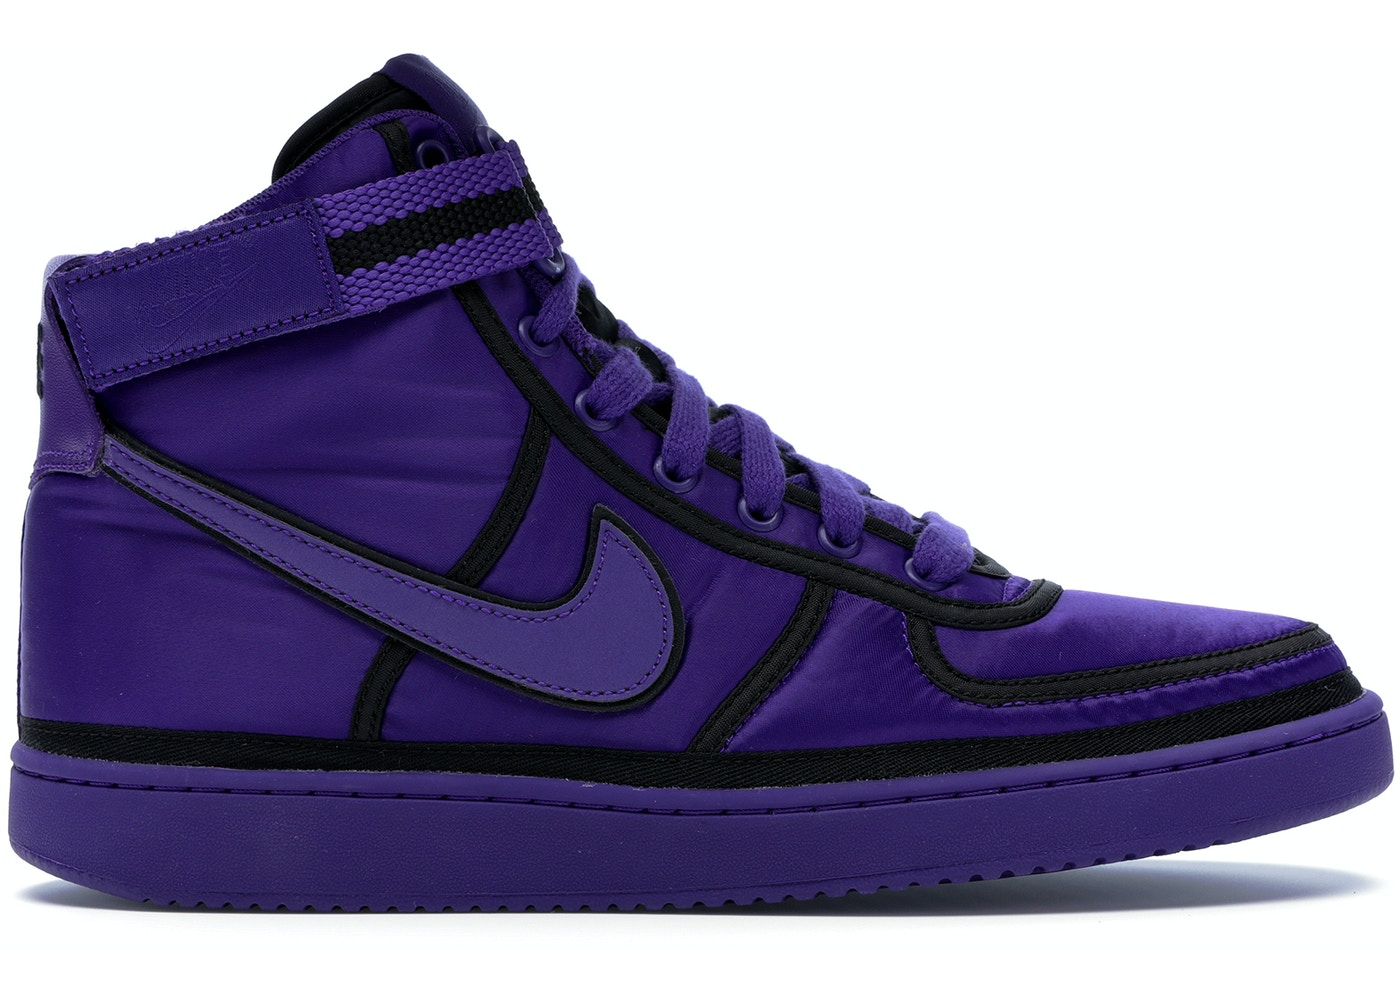 big sale 4a565 b2f6e Nike Vandal High Court Purple - AQ2176-500